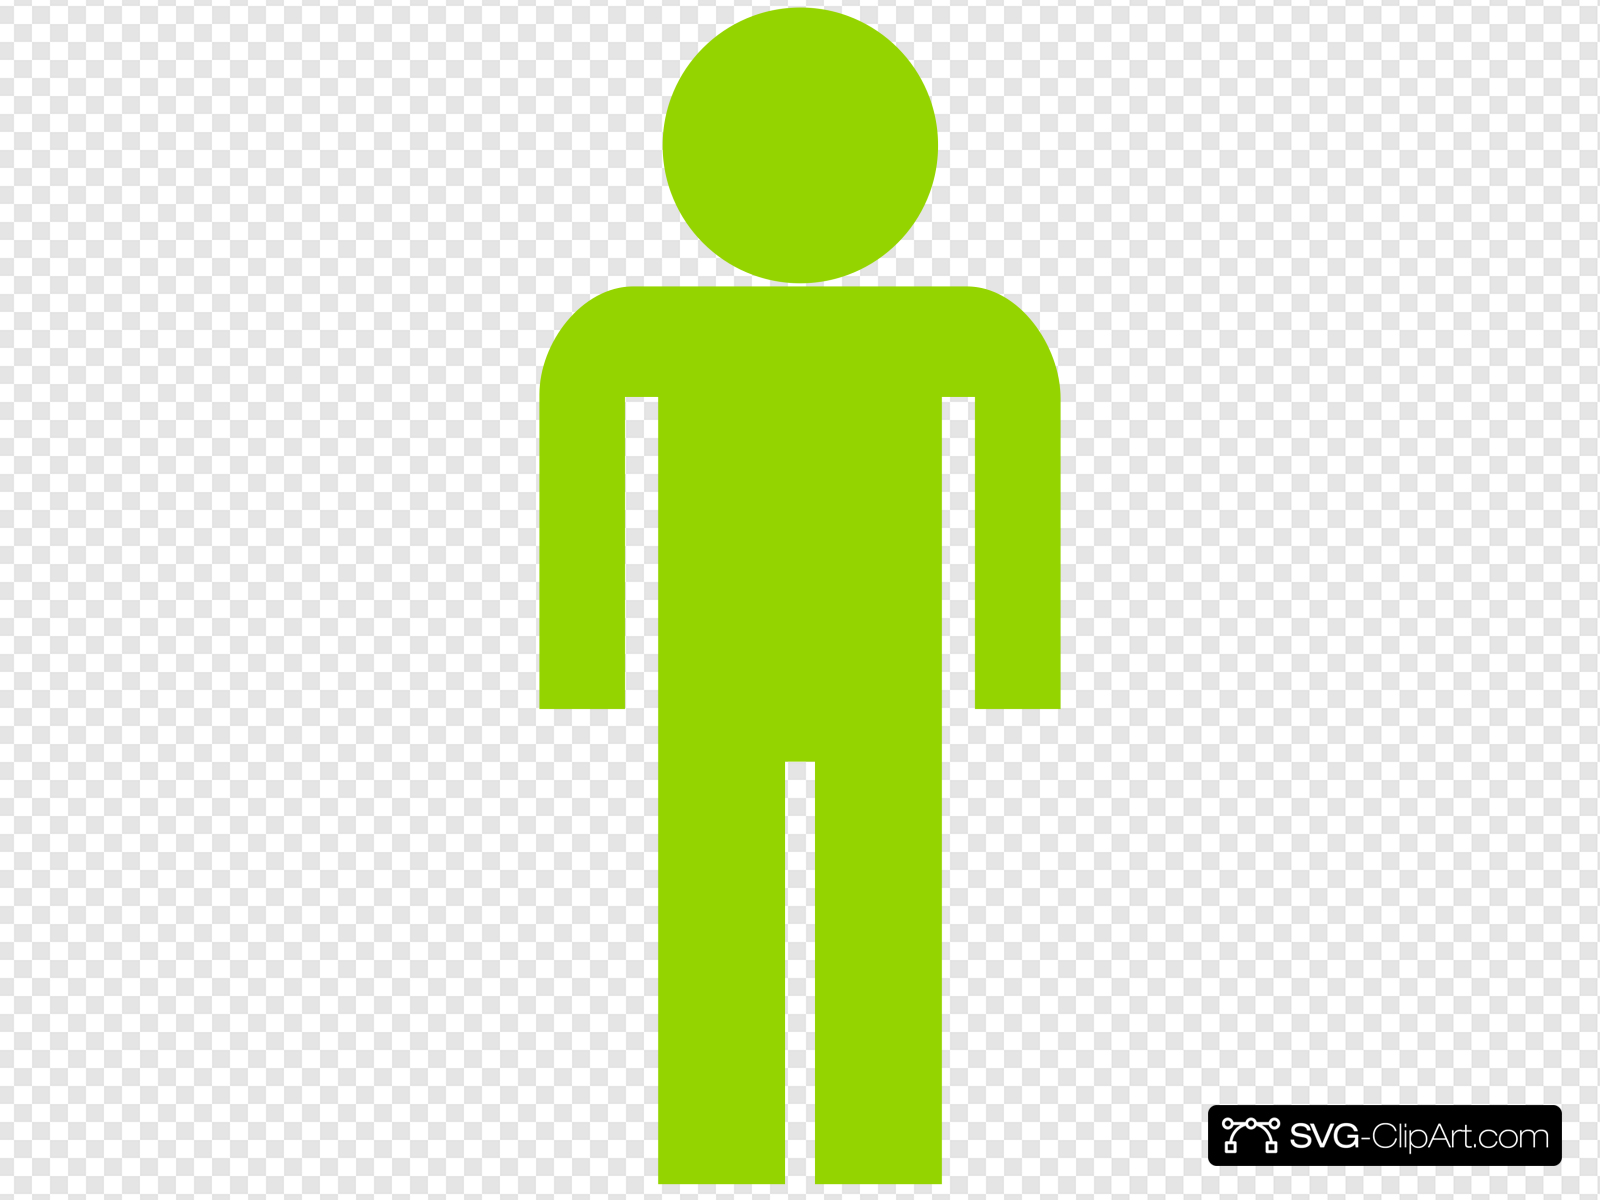 Green man images clipart clipart library library Green Man Clip art, Icon and SVG - SVG Clipart clipart library library